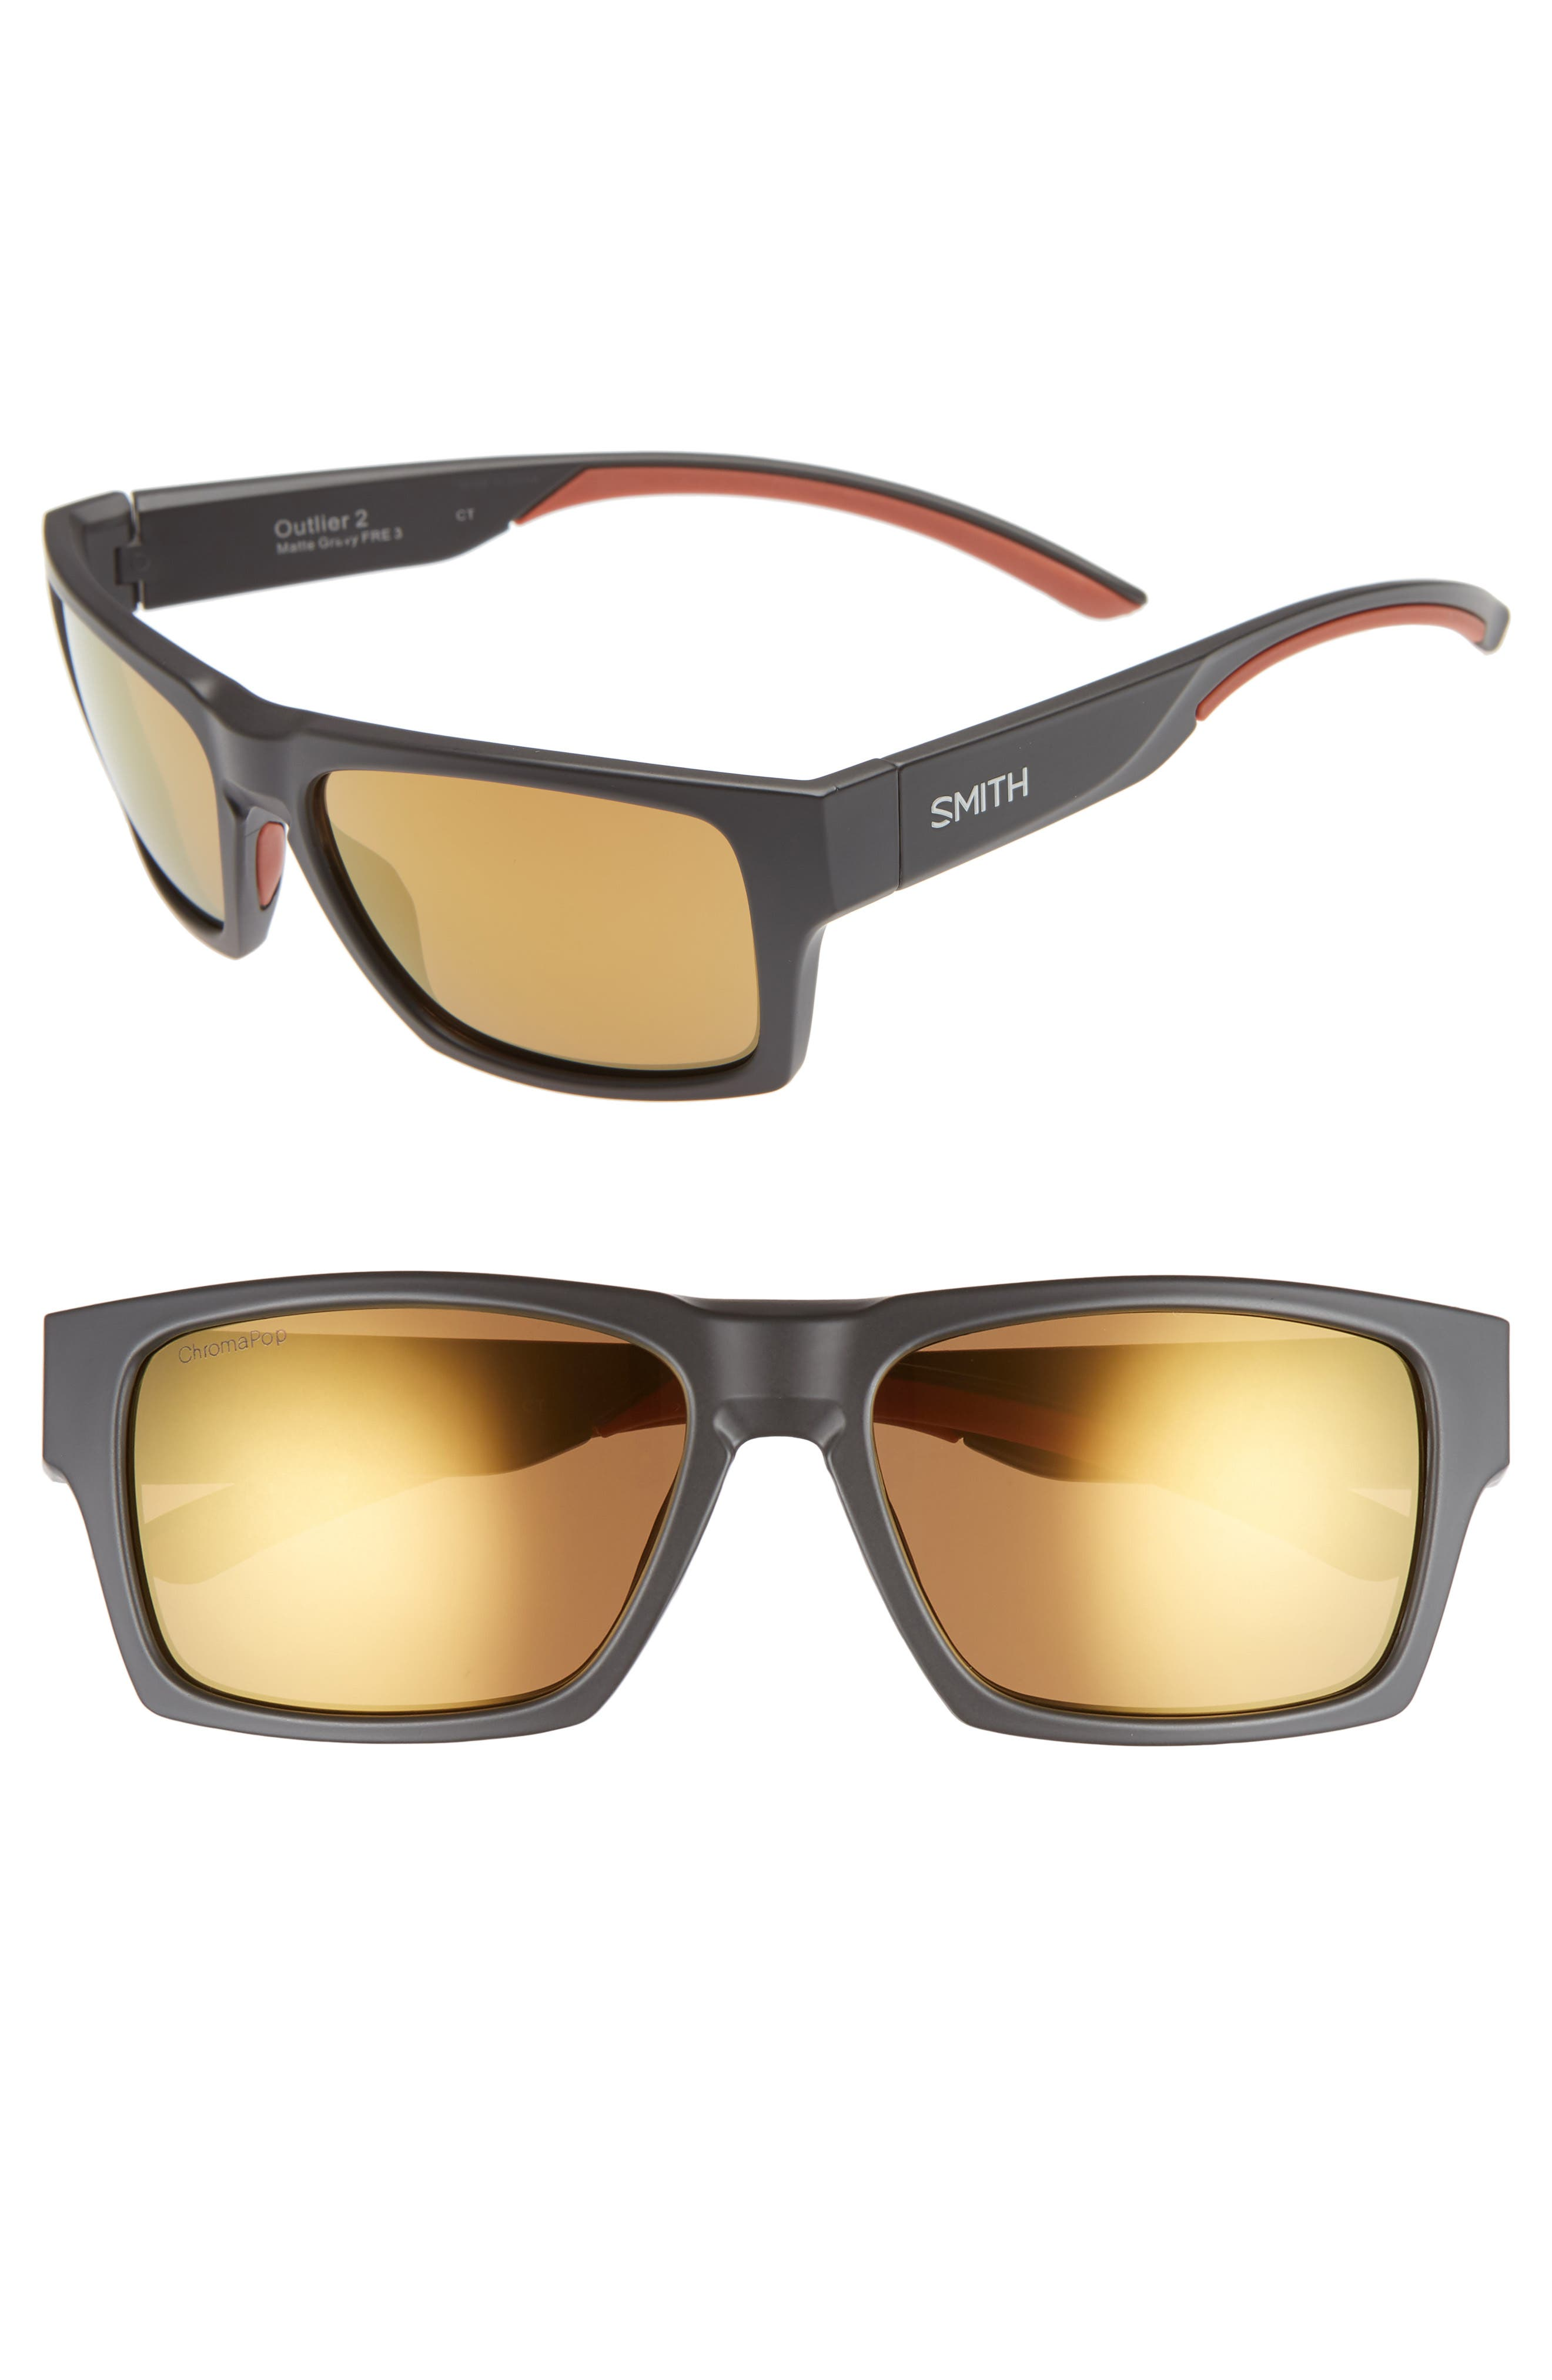 SMITH OUTLIER 2 57MM POLARIZED SQUARE SUNGLASSES - MATTE GRAVY